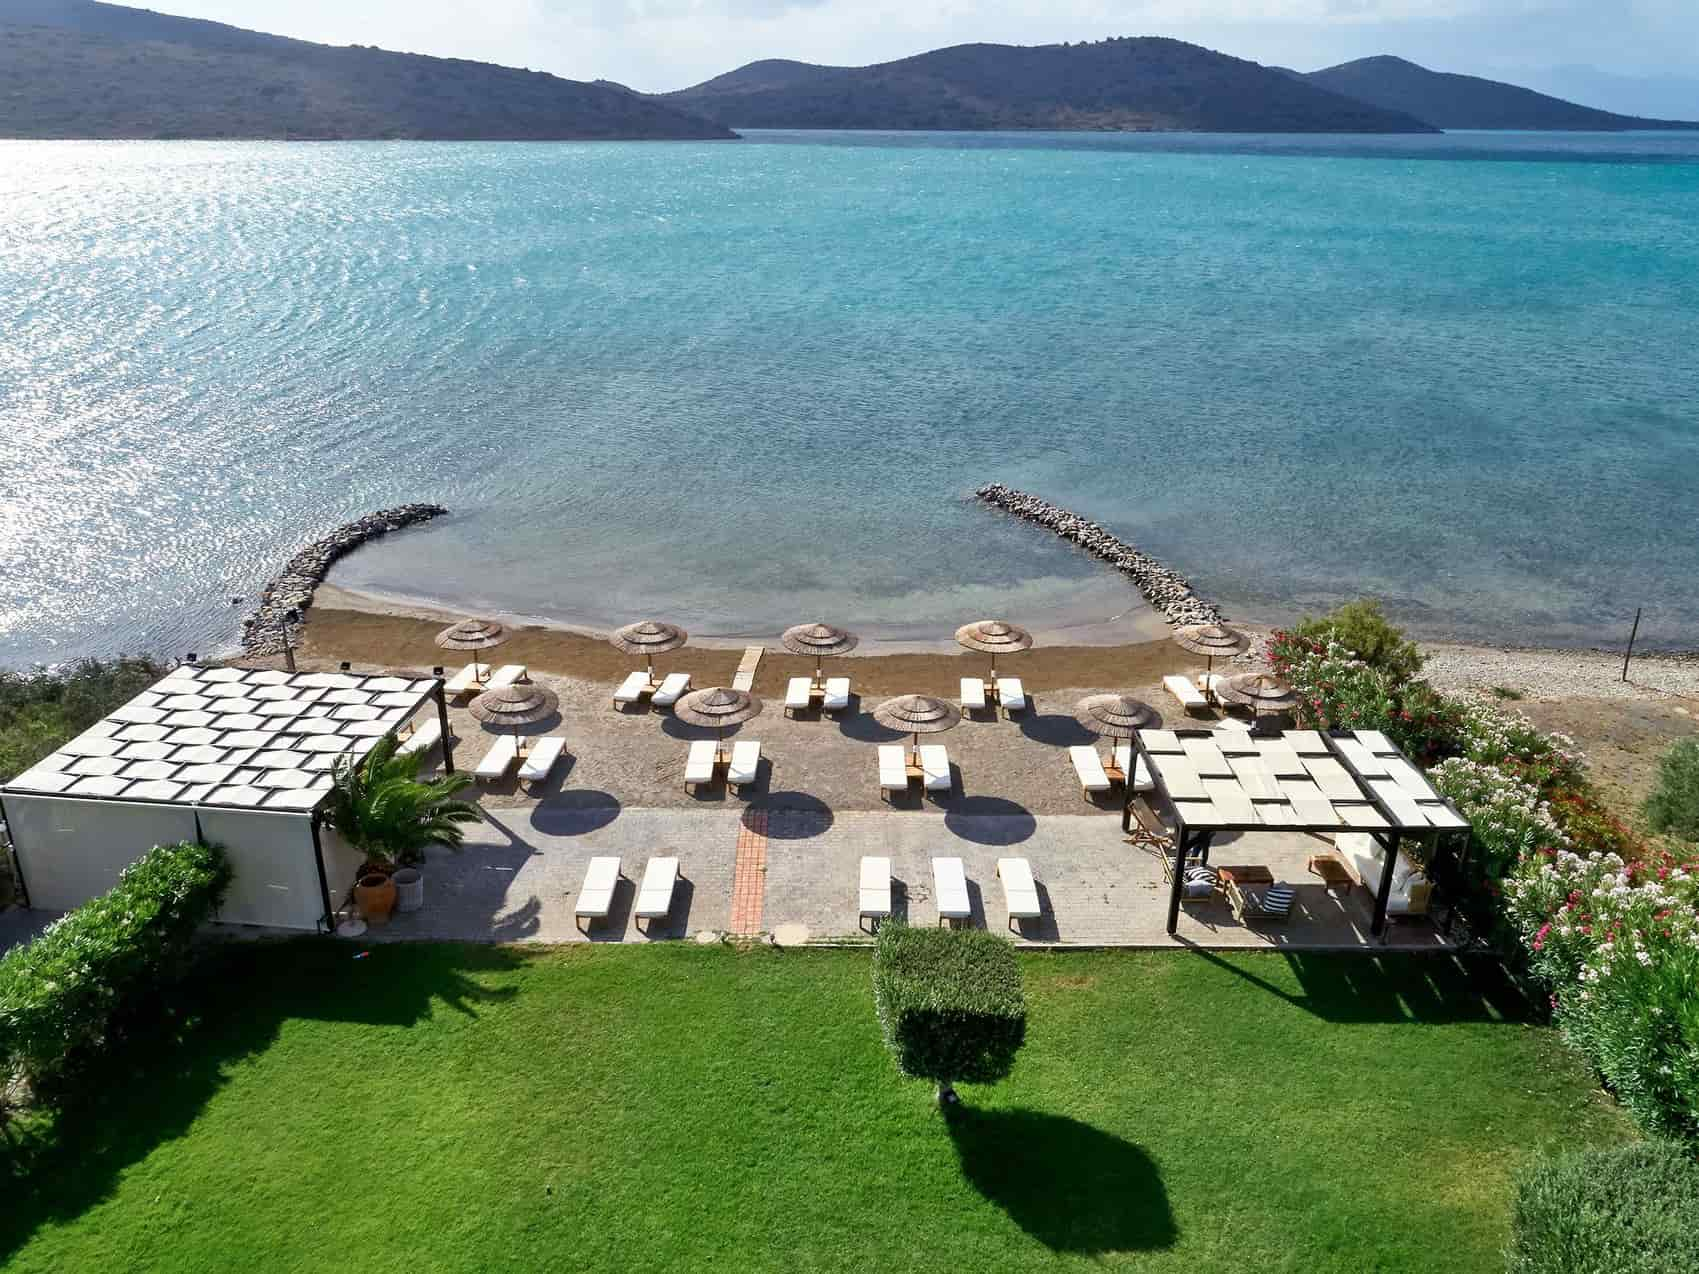 Special Offer Up To 25% At Elounda Luxury Gulf & Villas